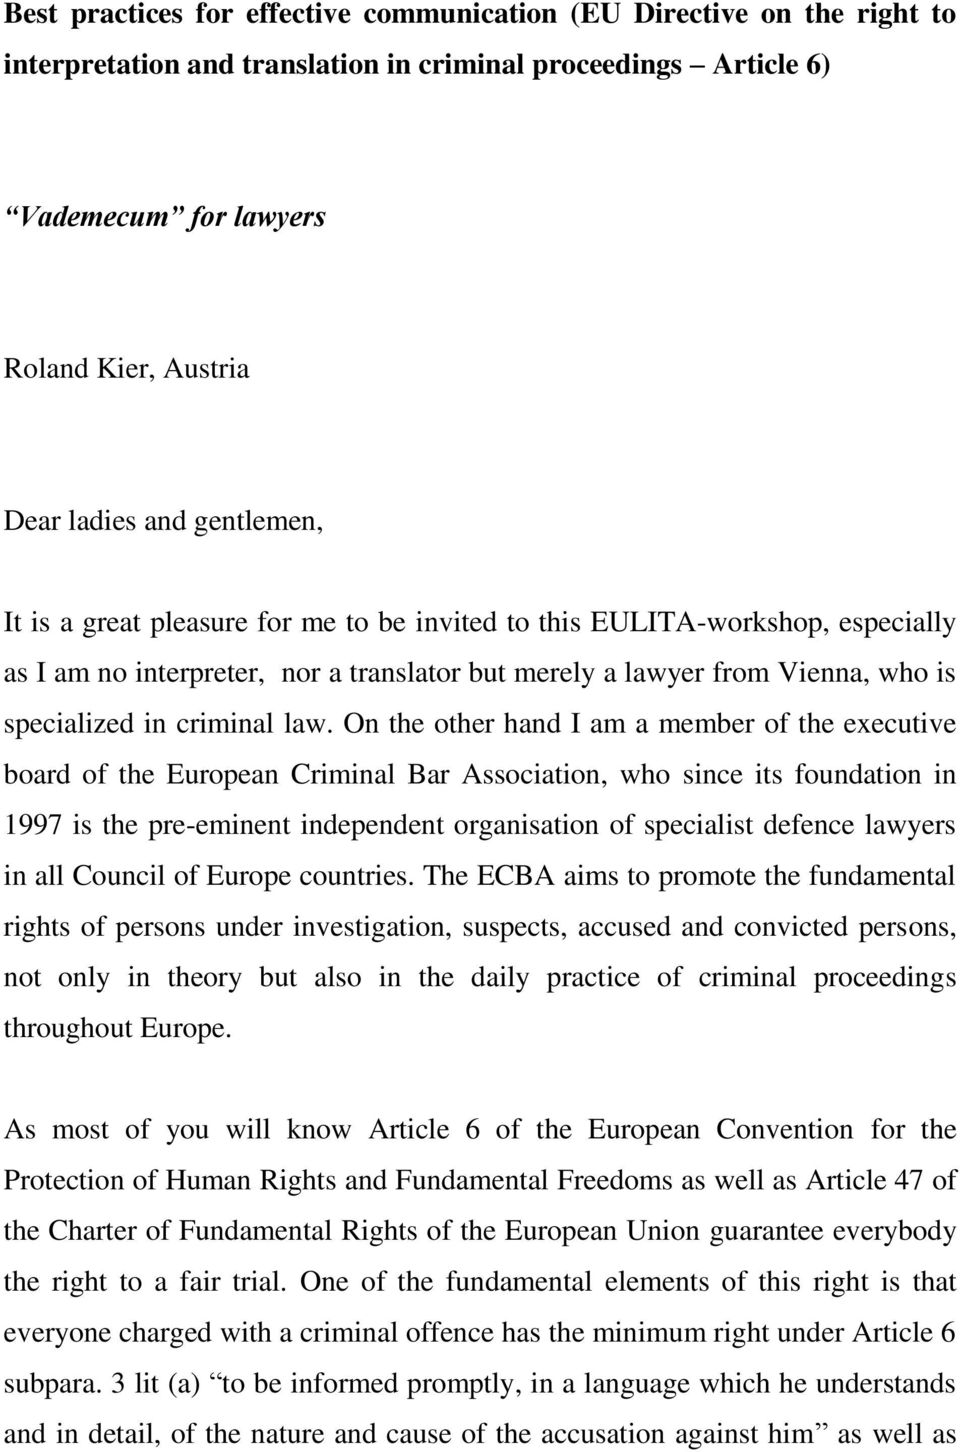 On the other hand I am a member of the executive board of the European Criminal Bar Association, who since its foundation in 1997 is the pre-eminent independent organisation of specialist defence